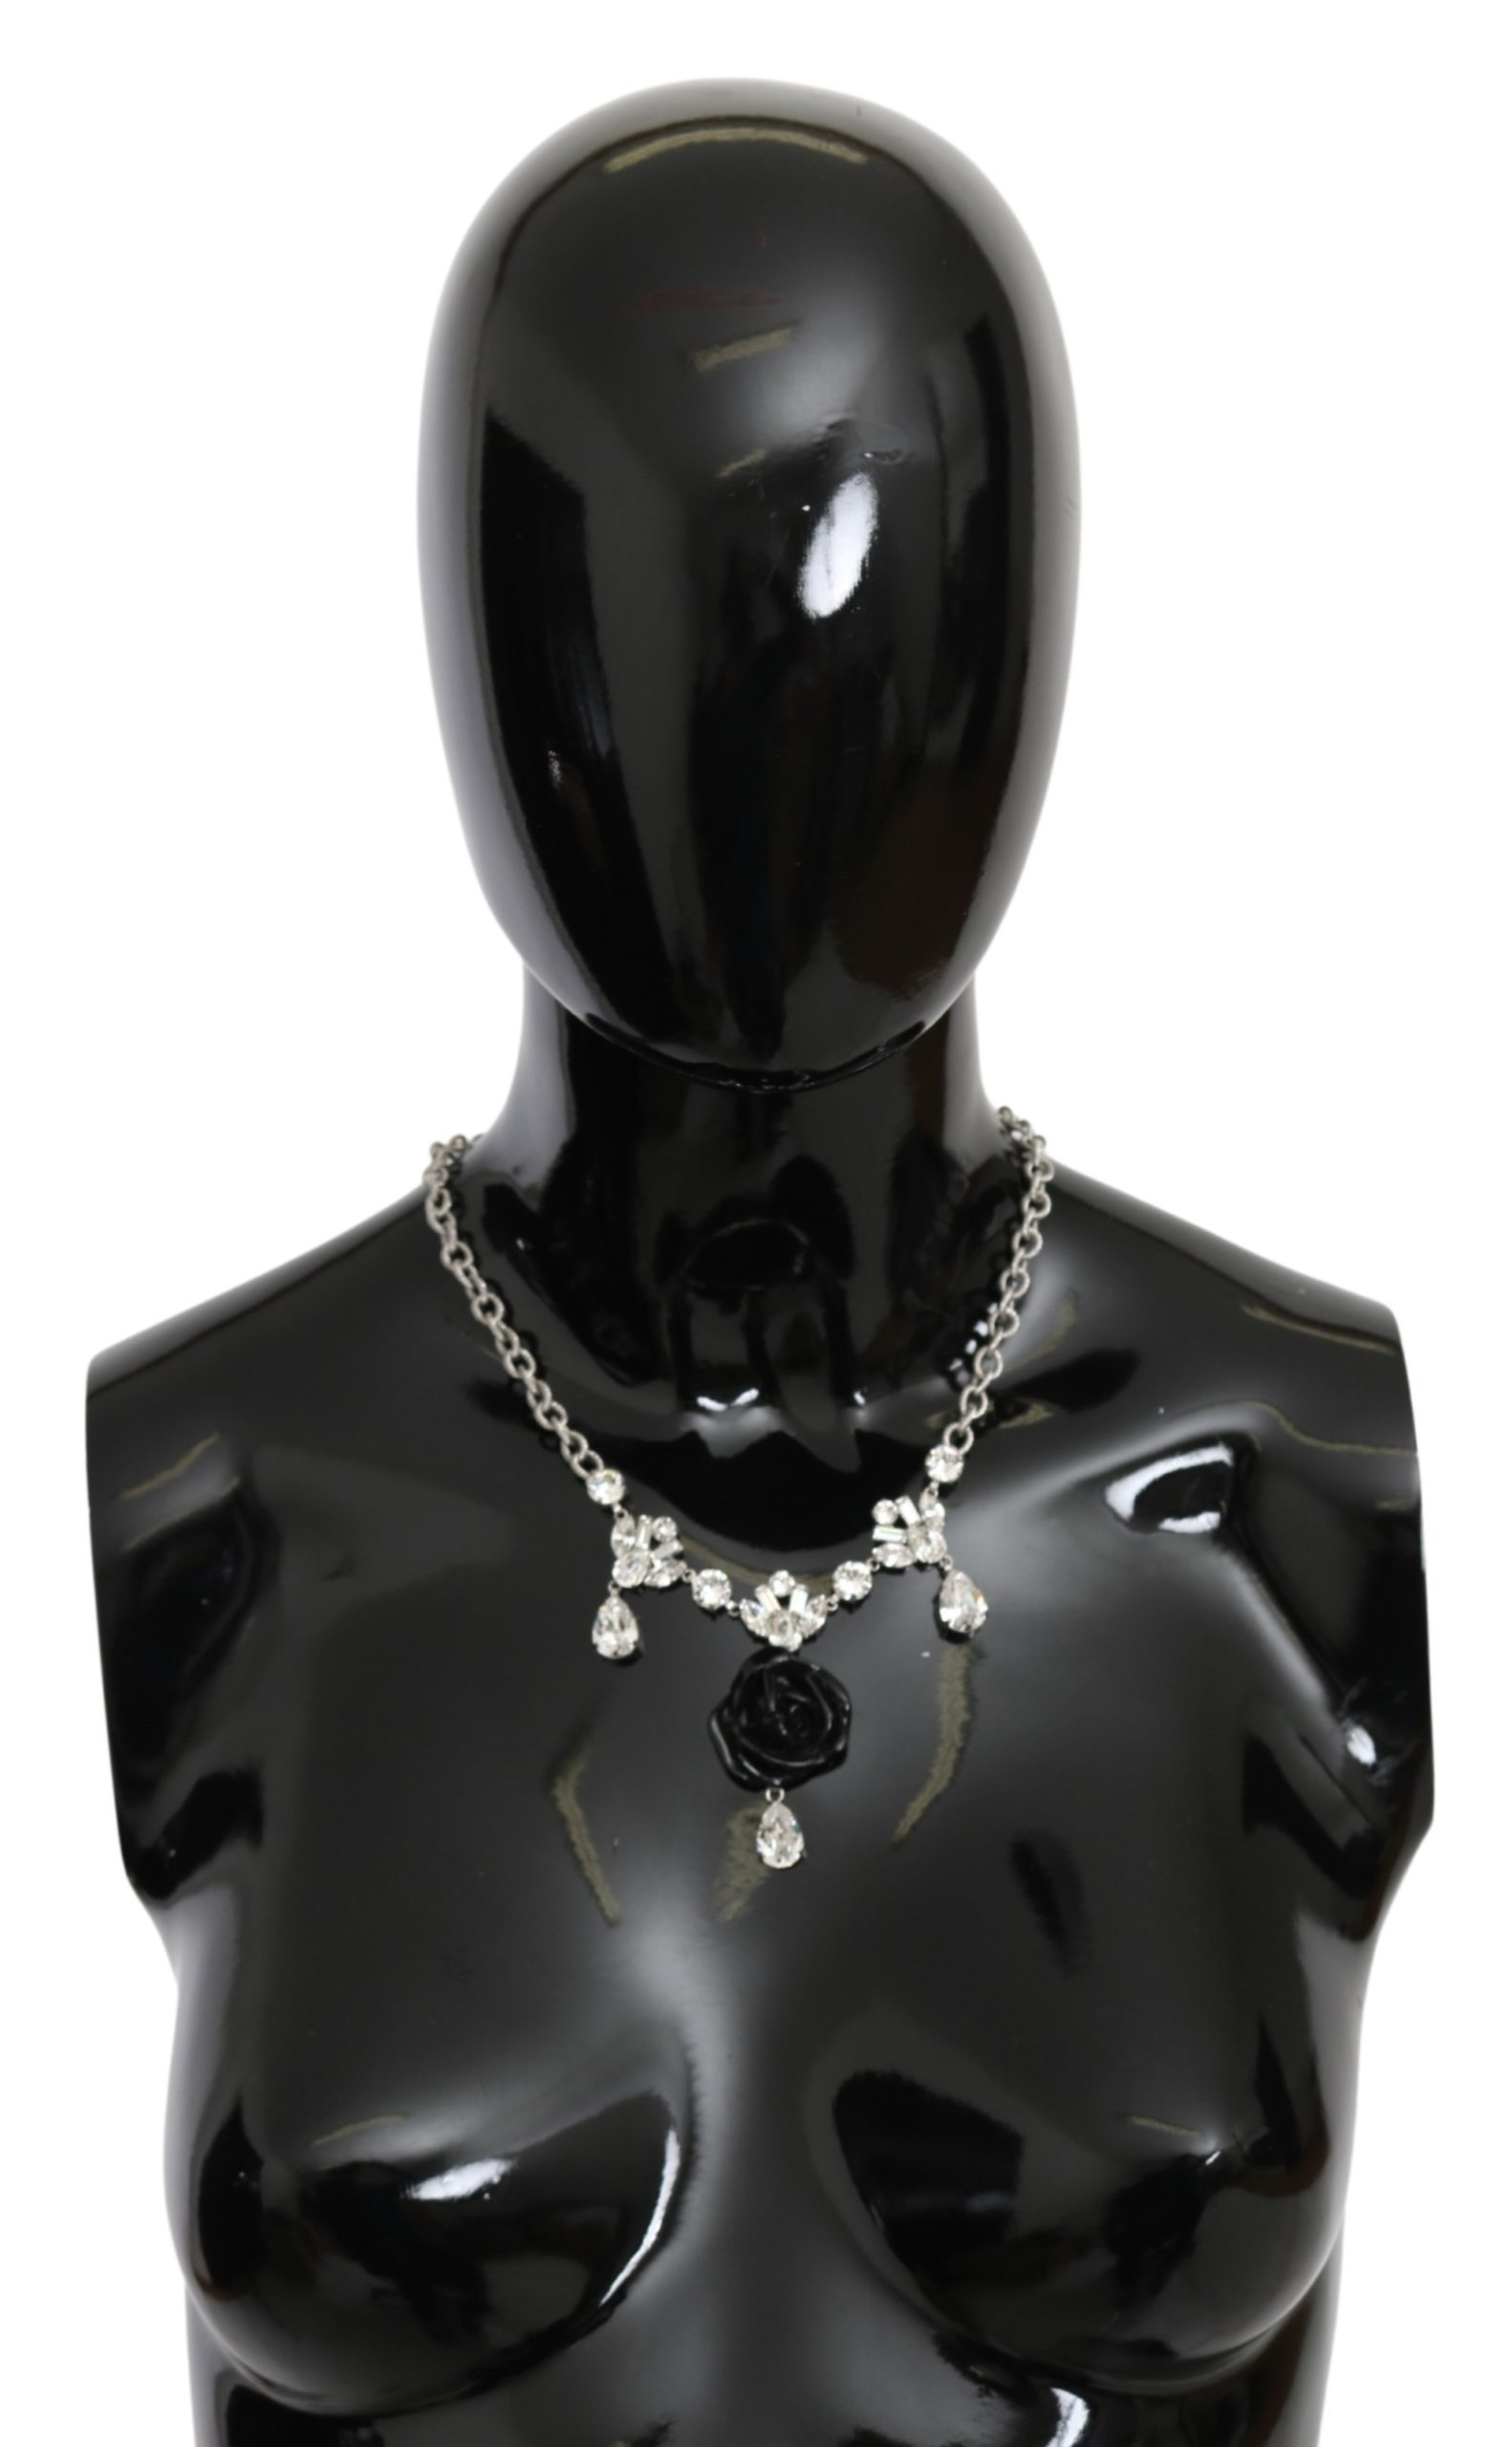 Dolce & Gabbana Women's Chain Clear Crystal Roes Necklace Silver SMY10092